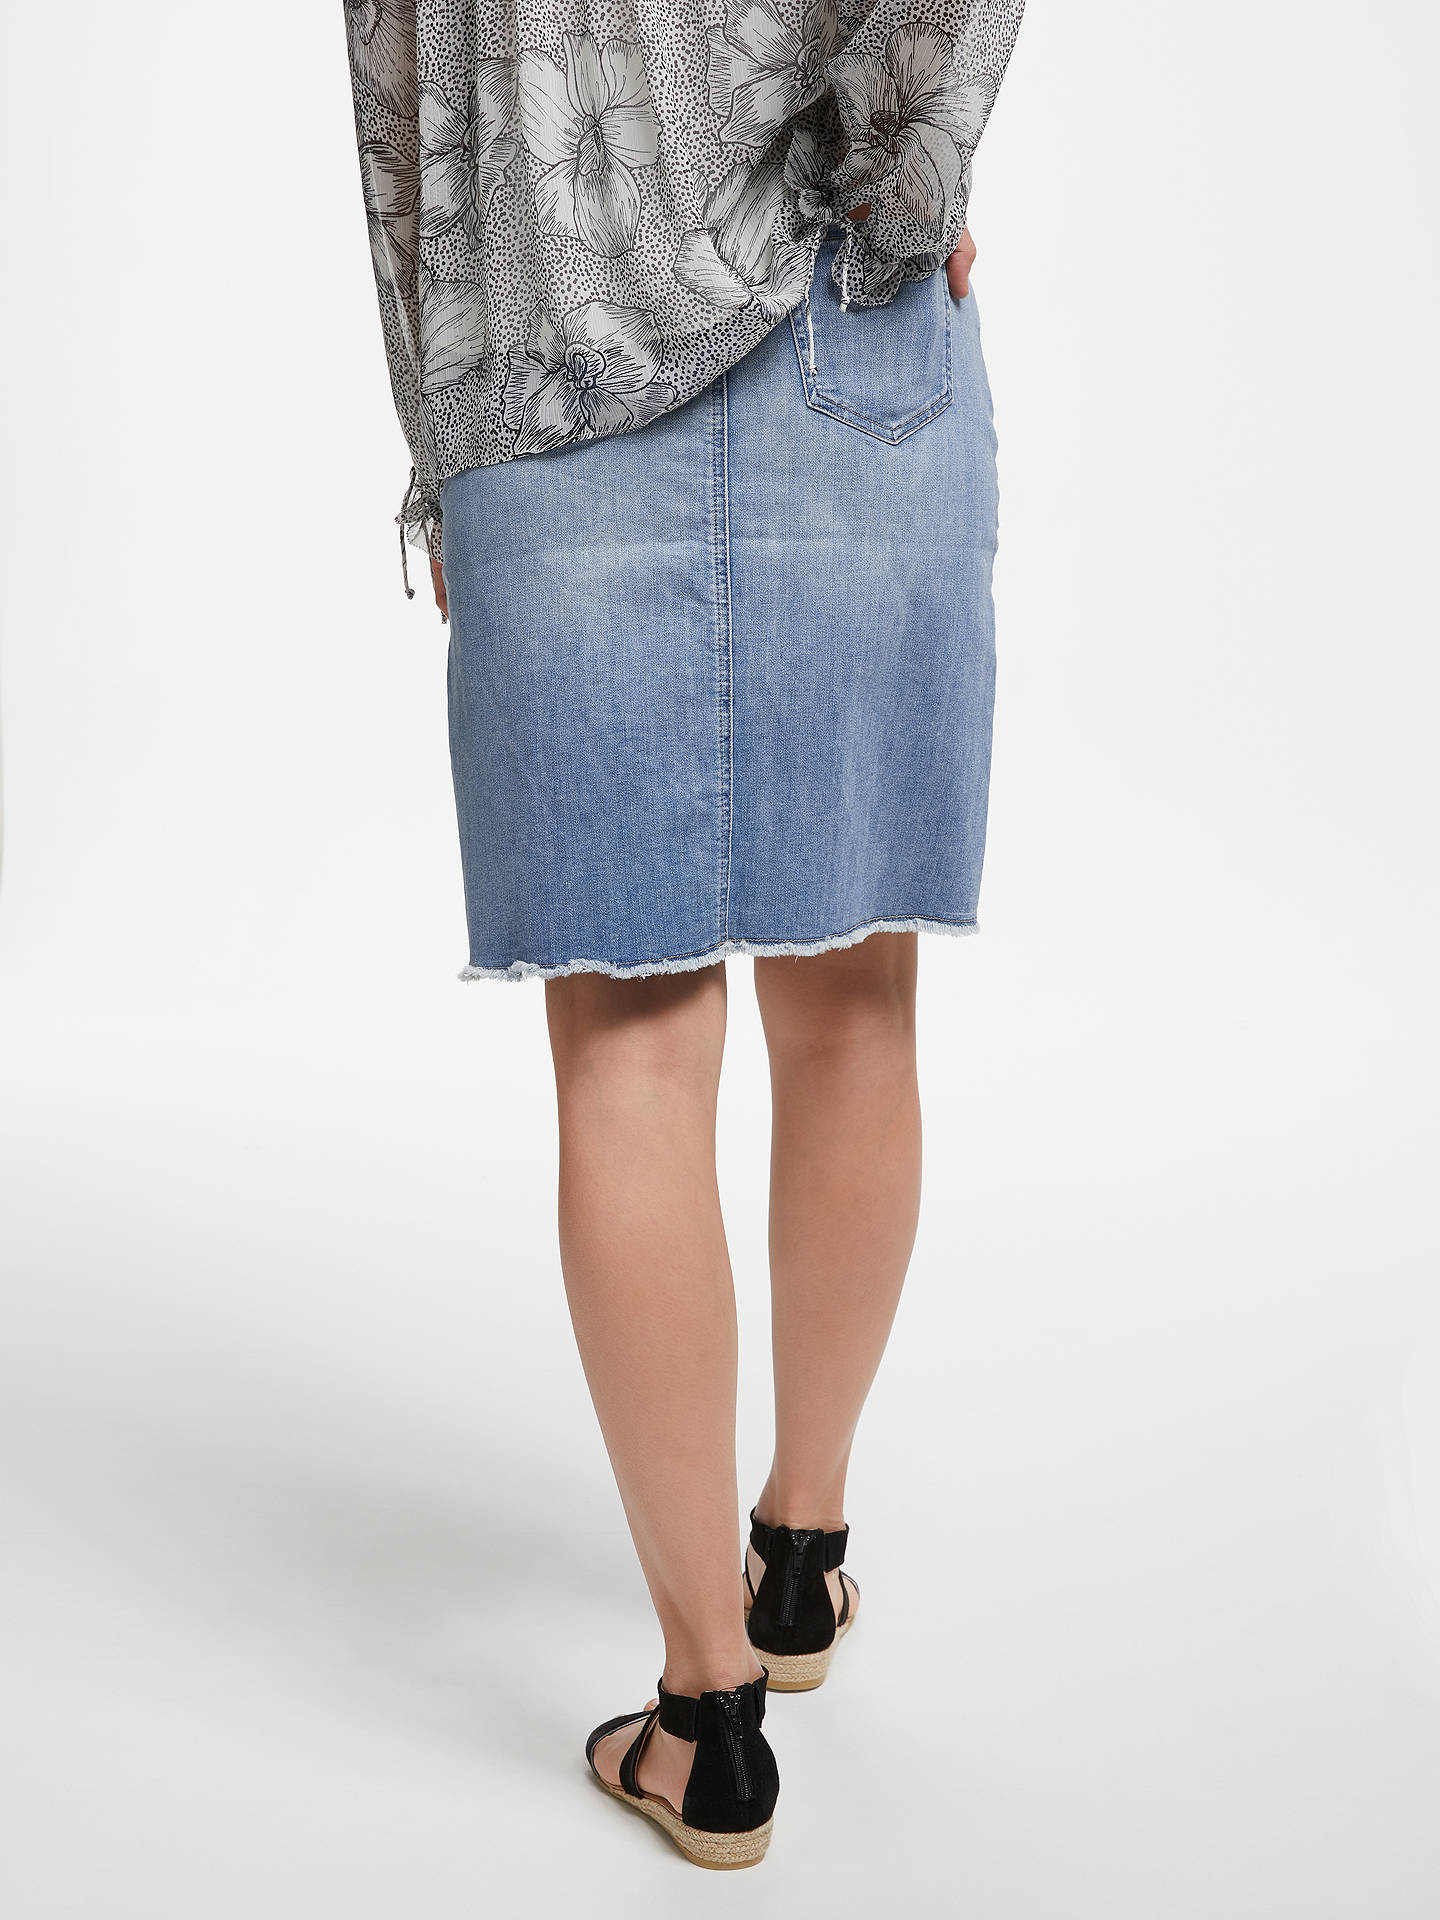 9267a34970 ... Buy NYDJ Frayed Hem Denim Skirt, Dreamstate, 8 Online at johnlewis.com  ...